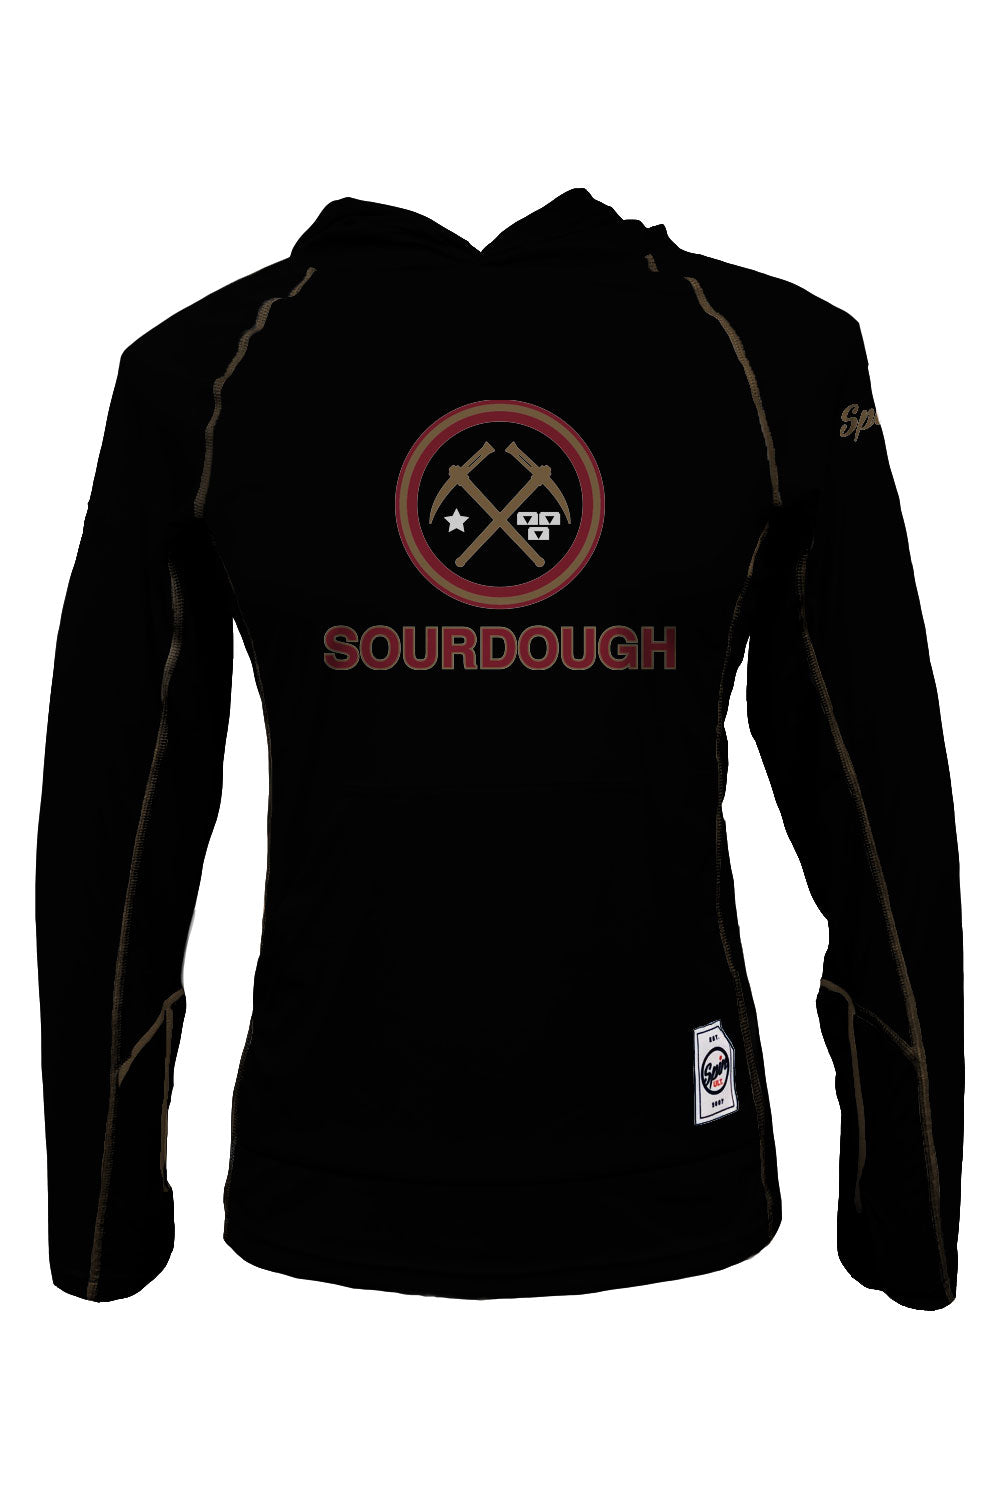 University of Denver Sourdough Full Sub Revolution Hoodie